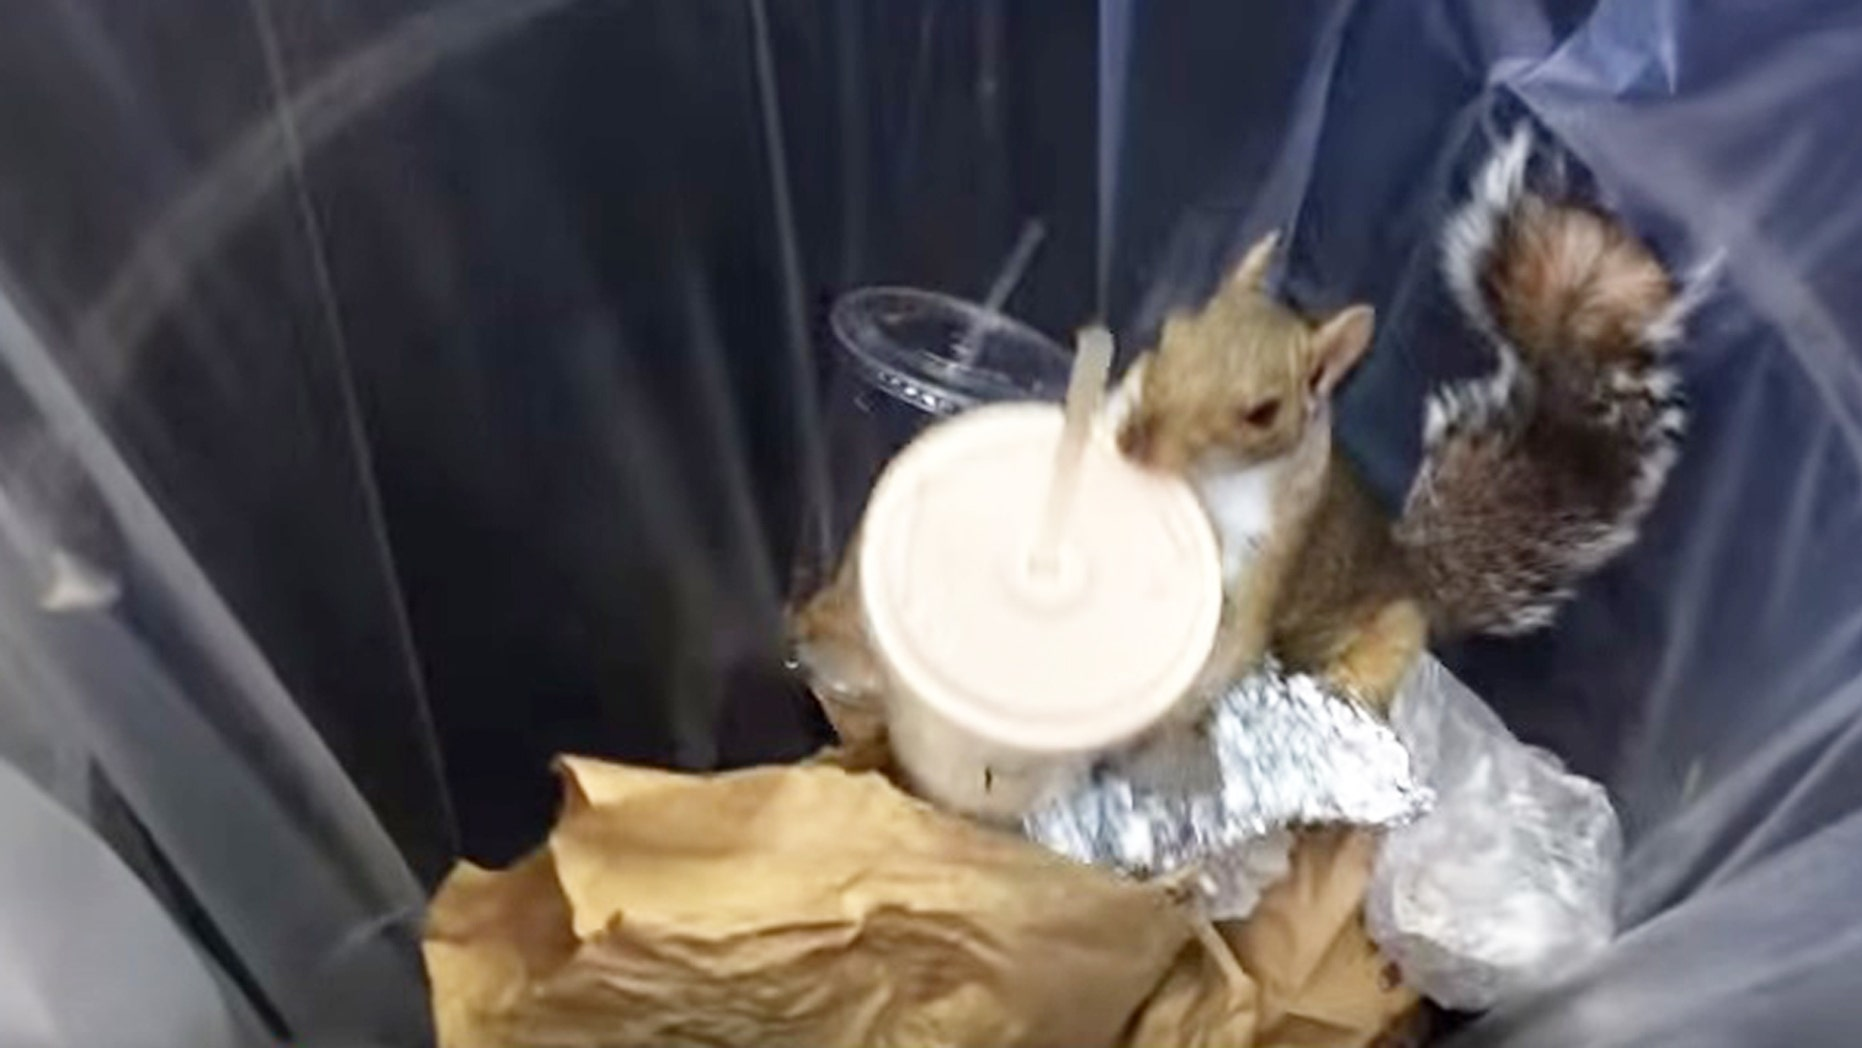 Sheer willpower: A squirrel finds a discarded milkshake and hoards it to safety.